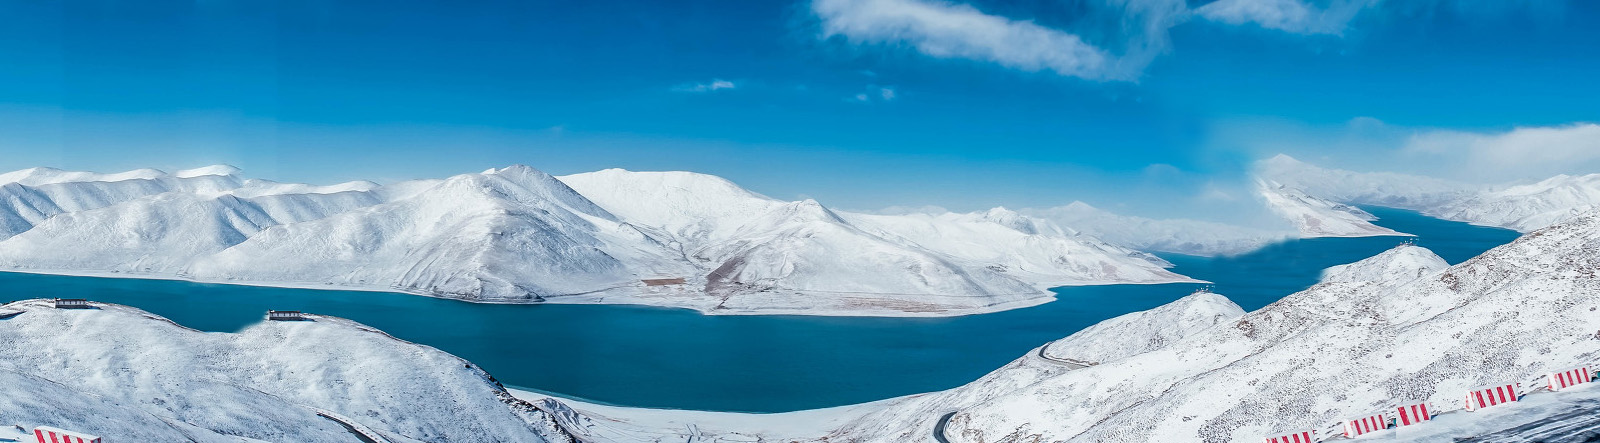 Tibet Group Tour,Tibet Winter Tour